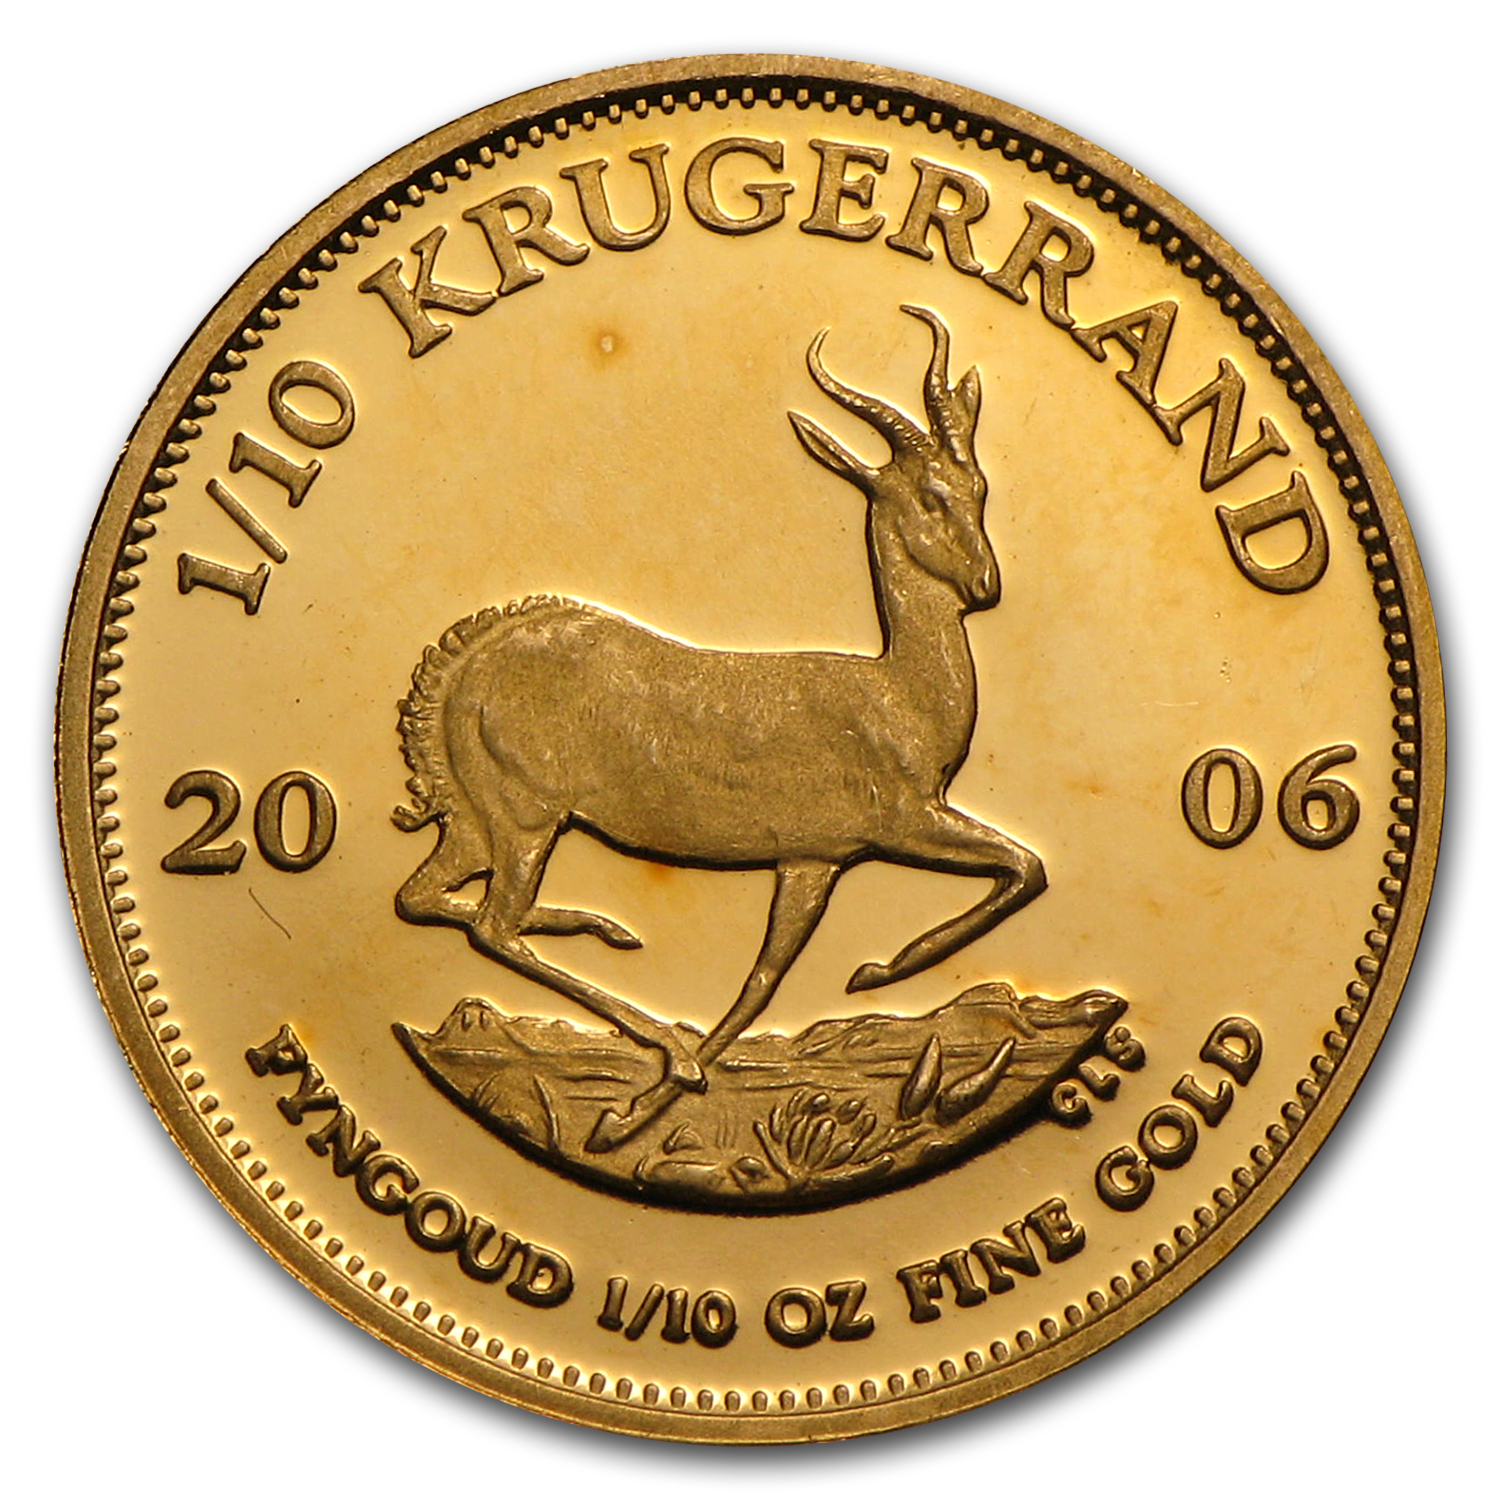 2006 South Africa 1/10 oz Proof Gold Krugerrand